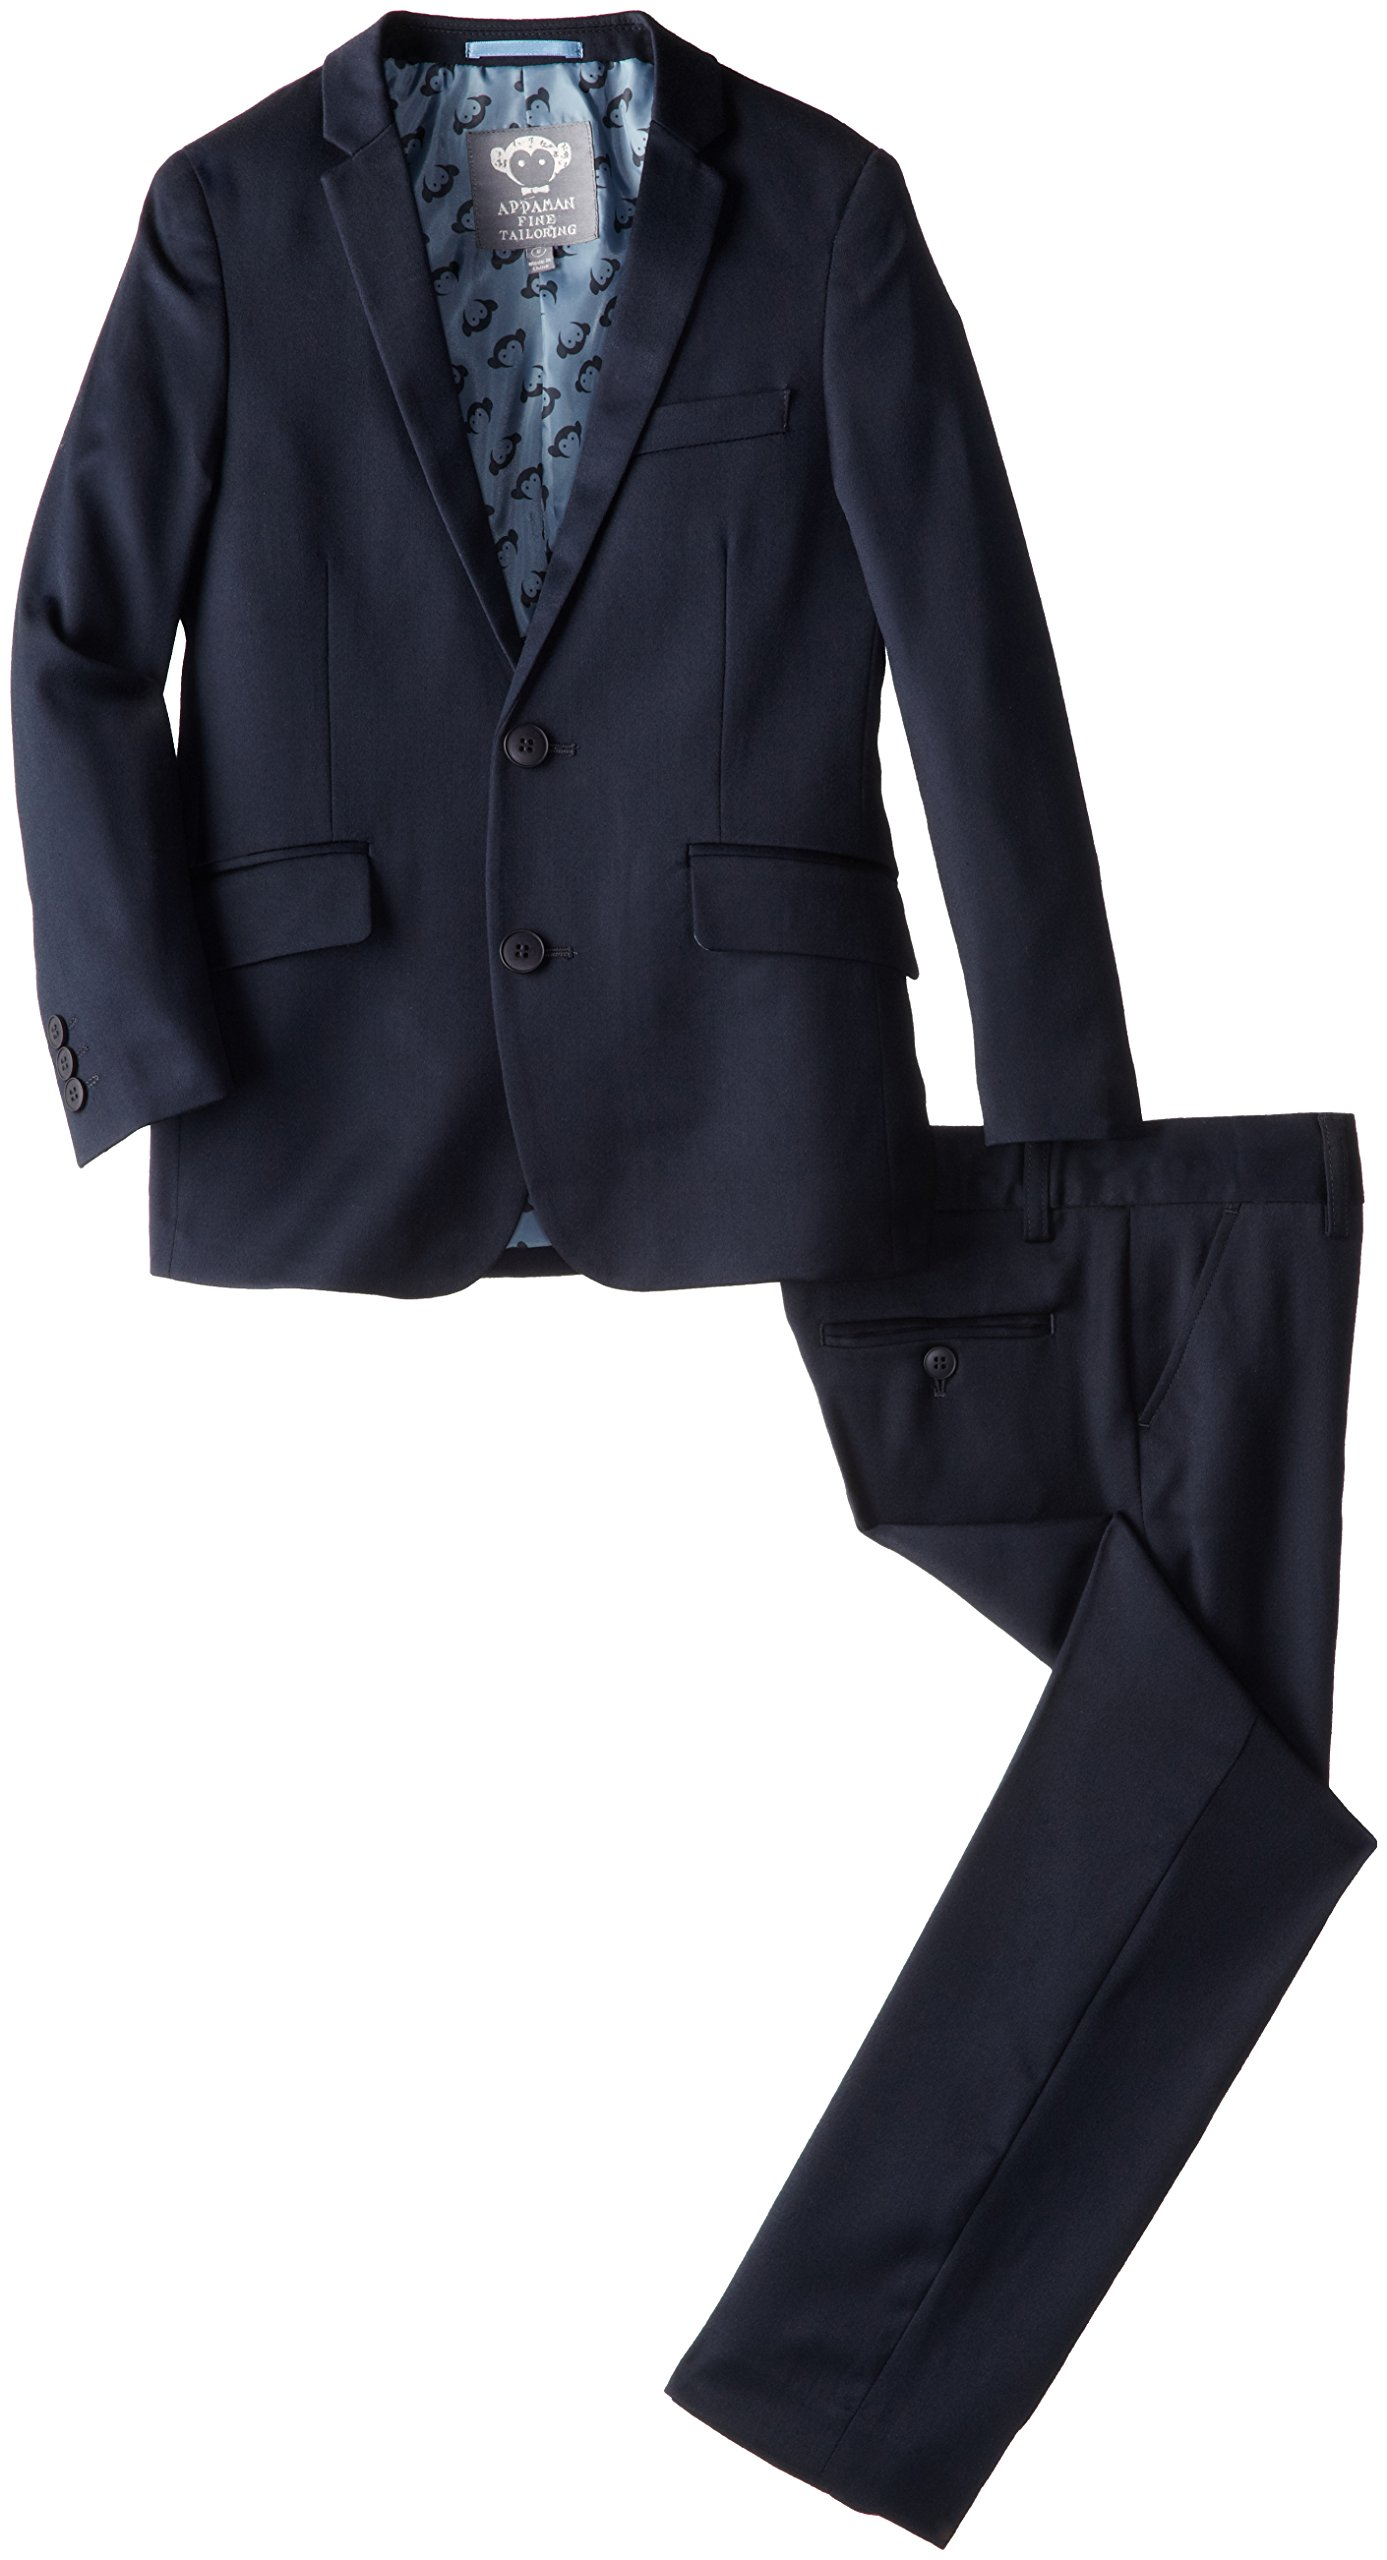 Appaman Big Boys' Two Piece Classic Mod Suit In Navy, Navy Blue, 10